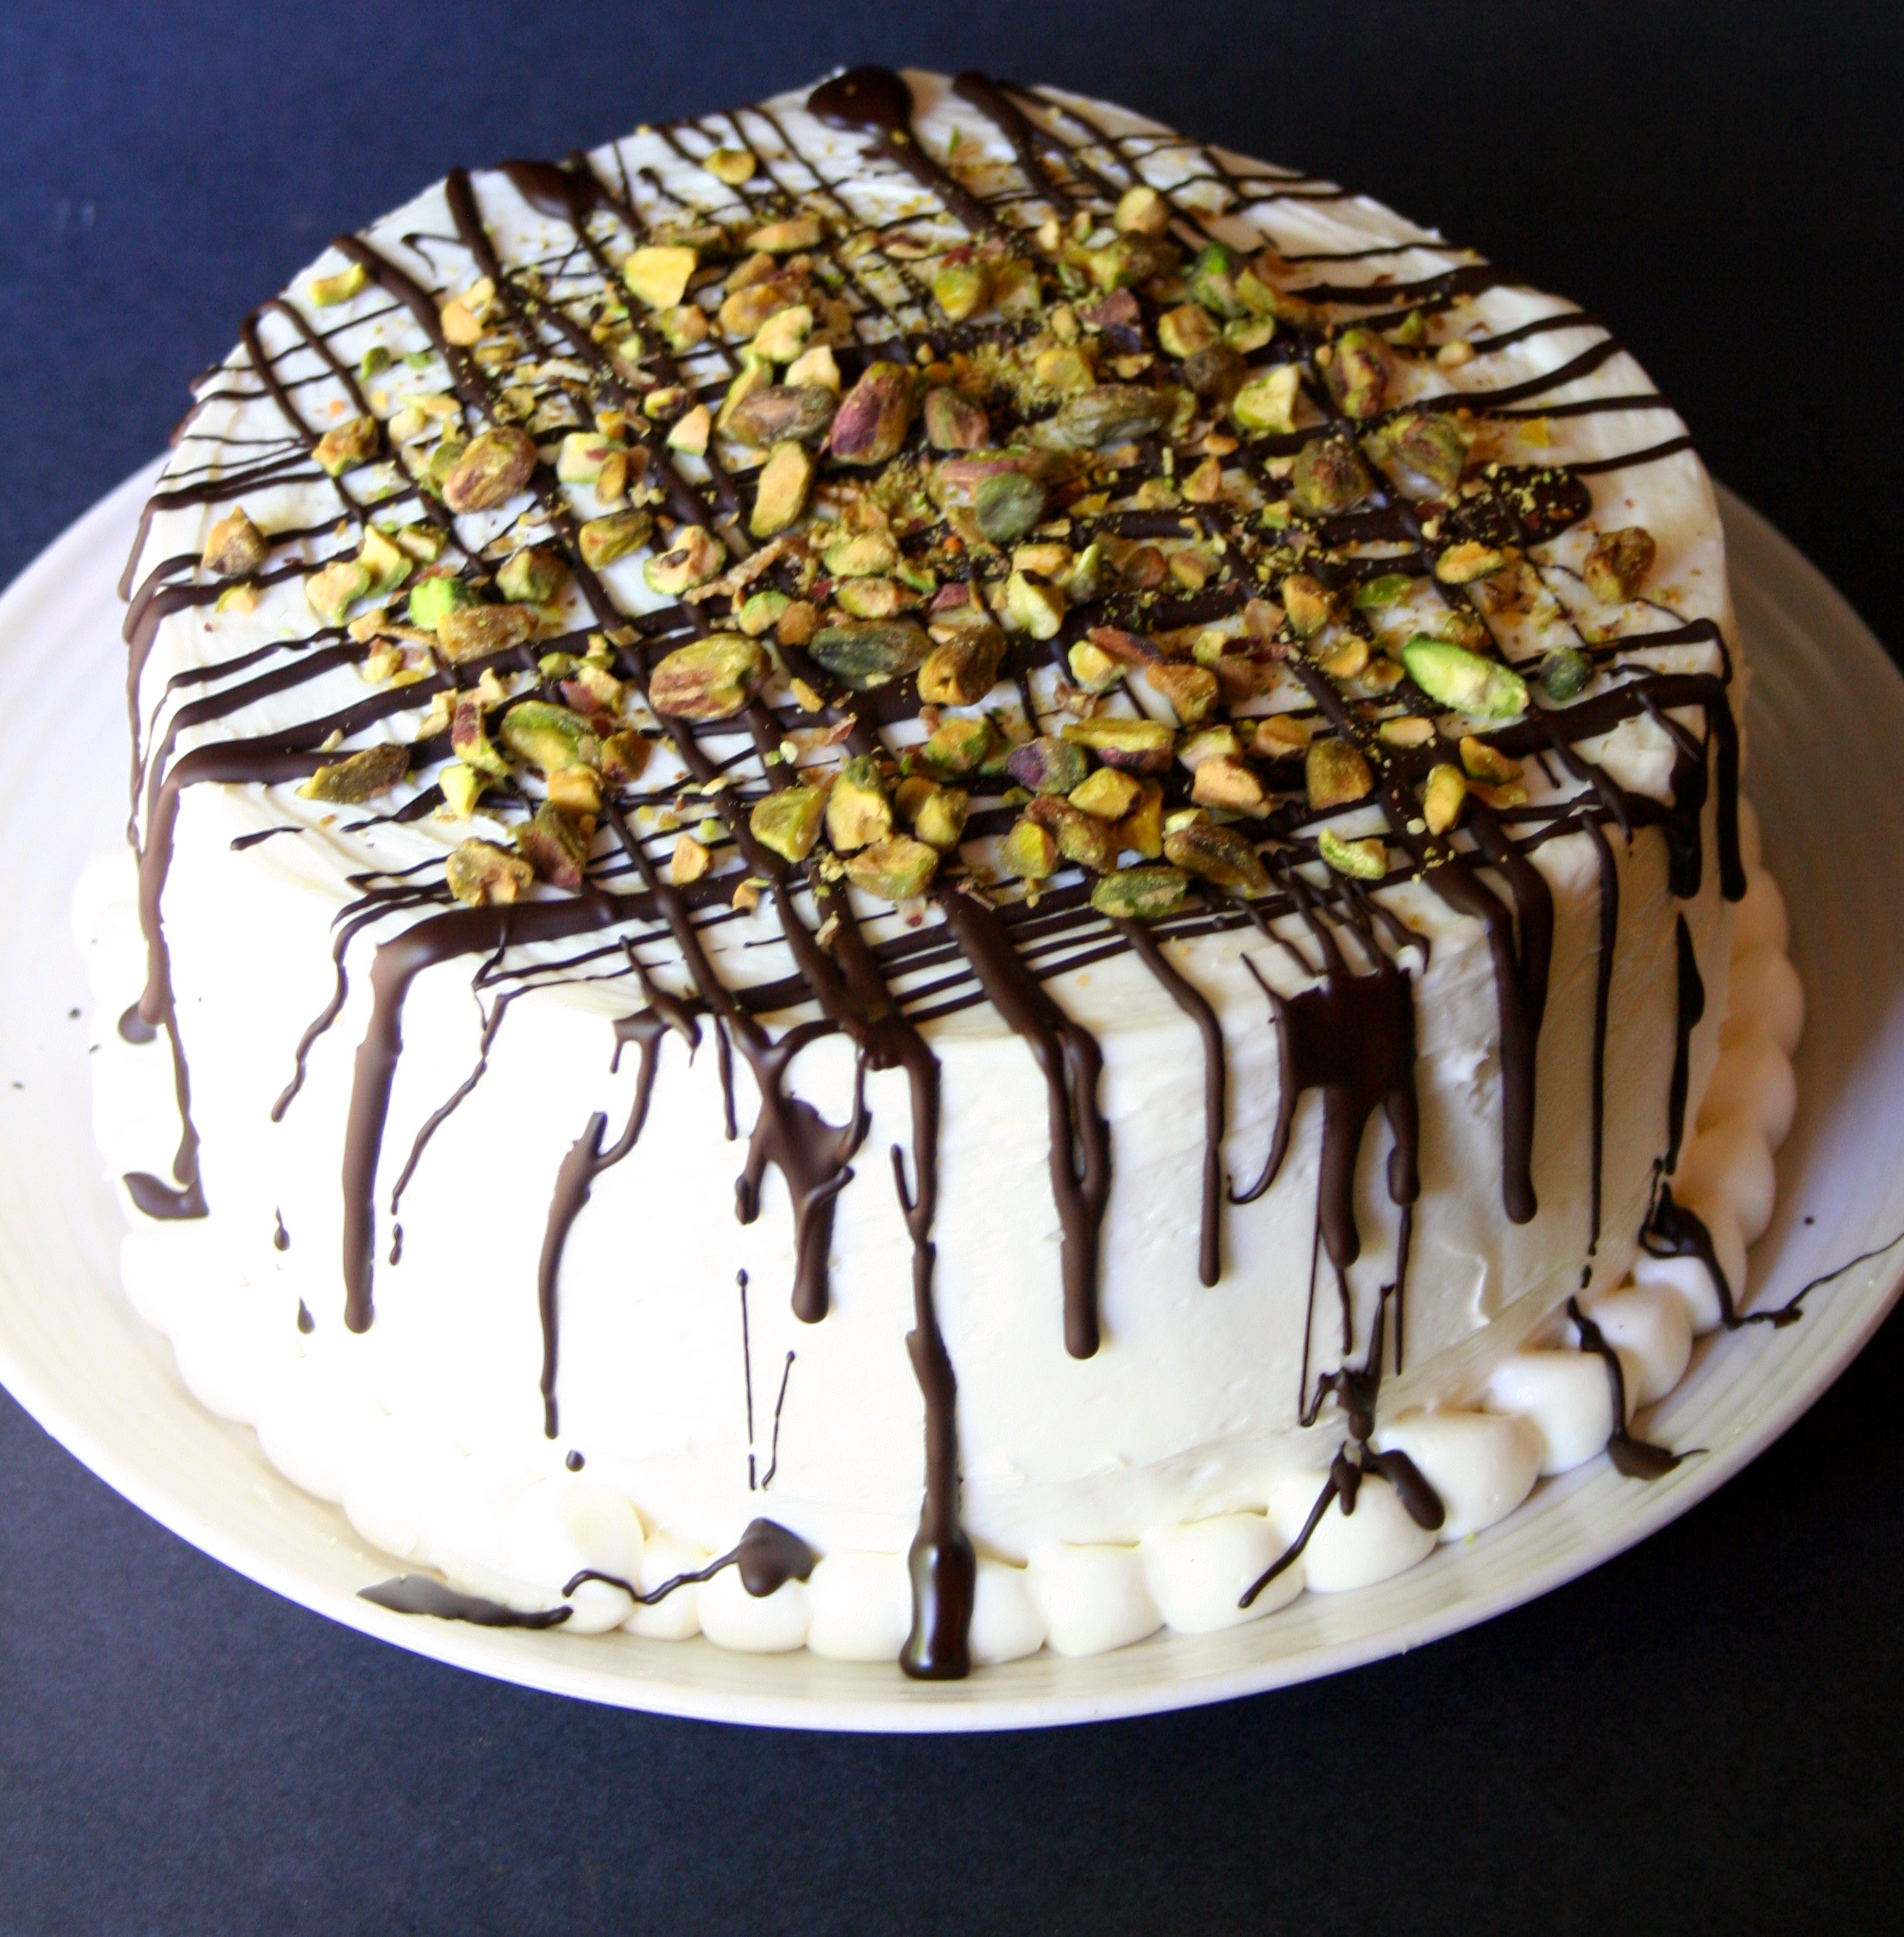 Finished, whole pistachio cake